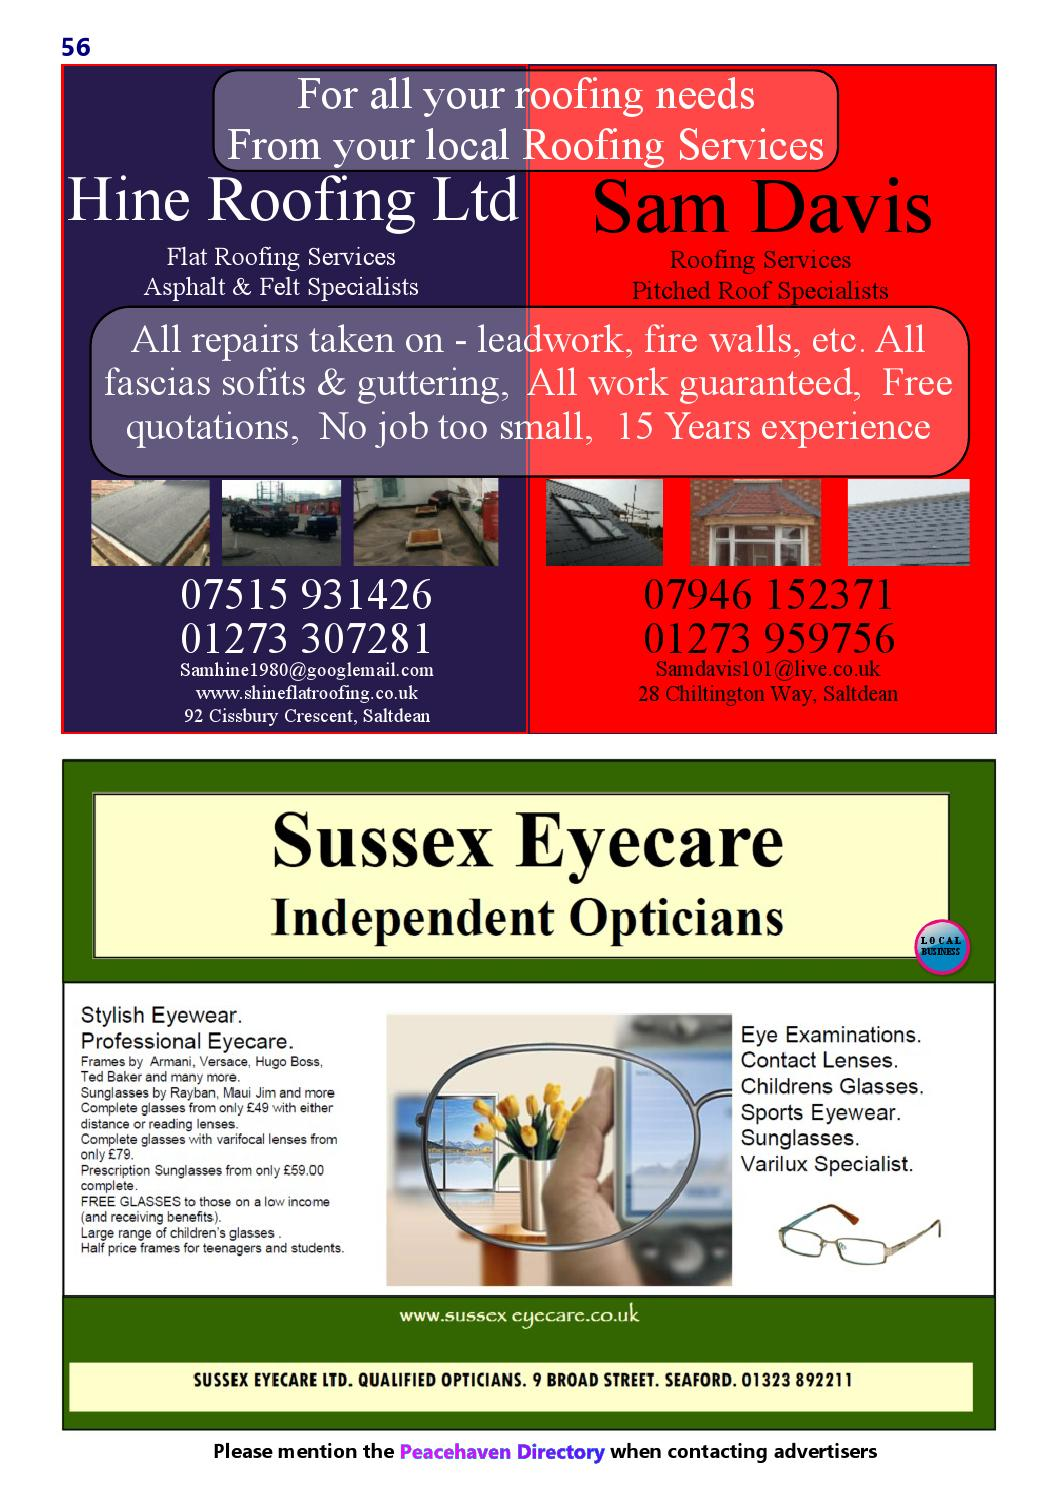 Peacehaven directory august 2015 on line edition by Anne